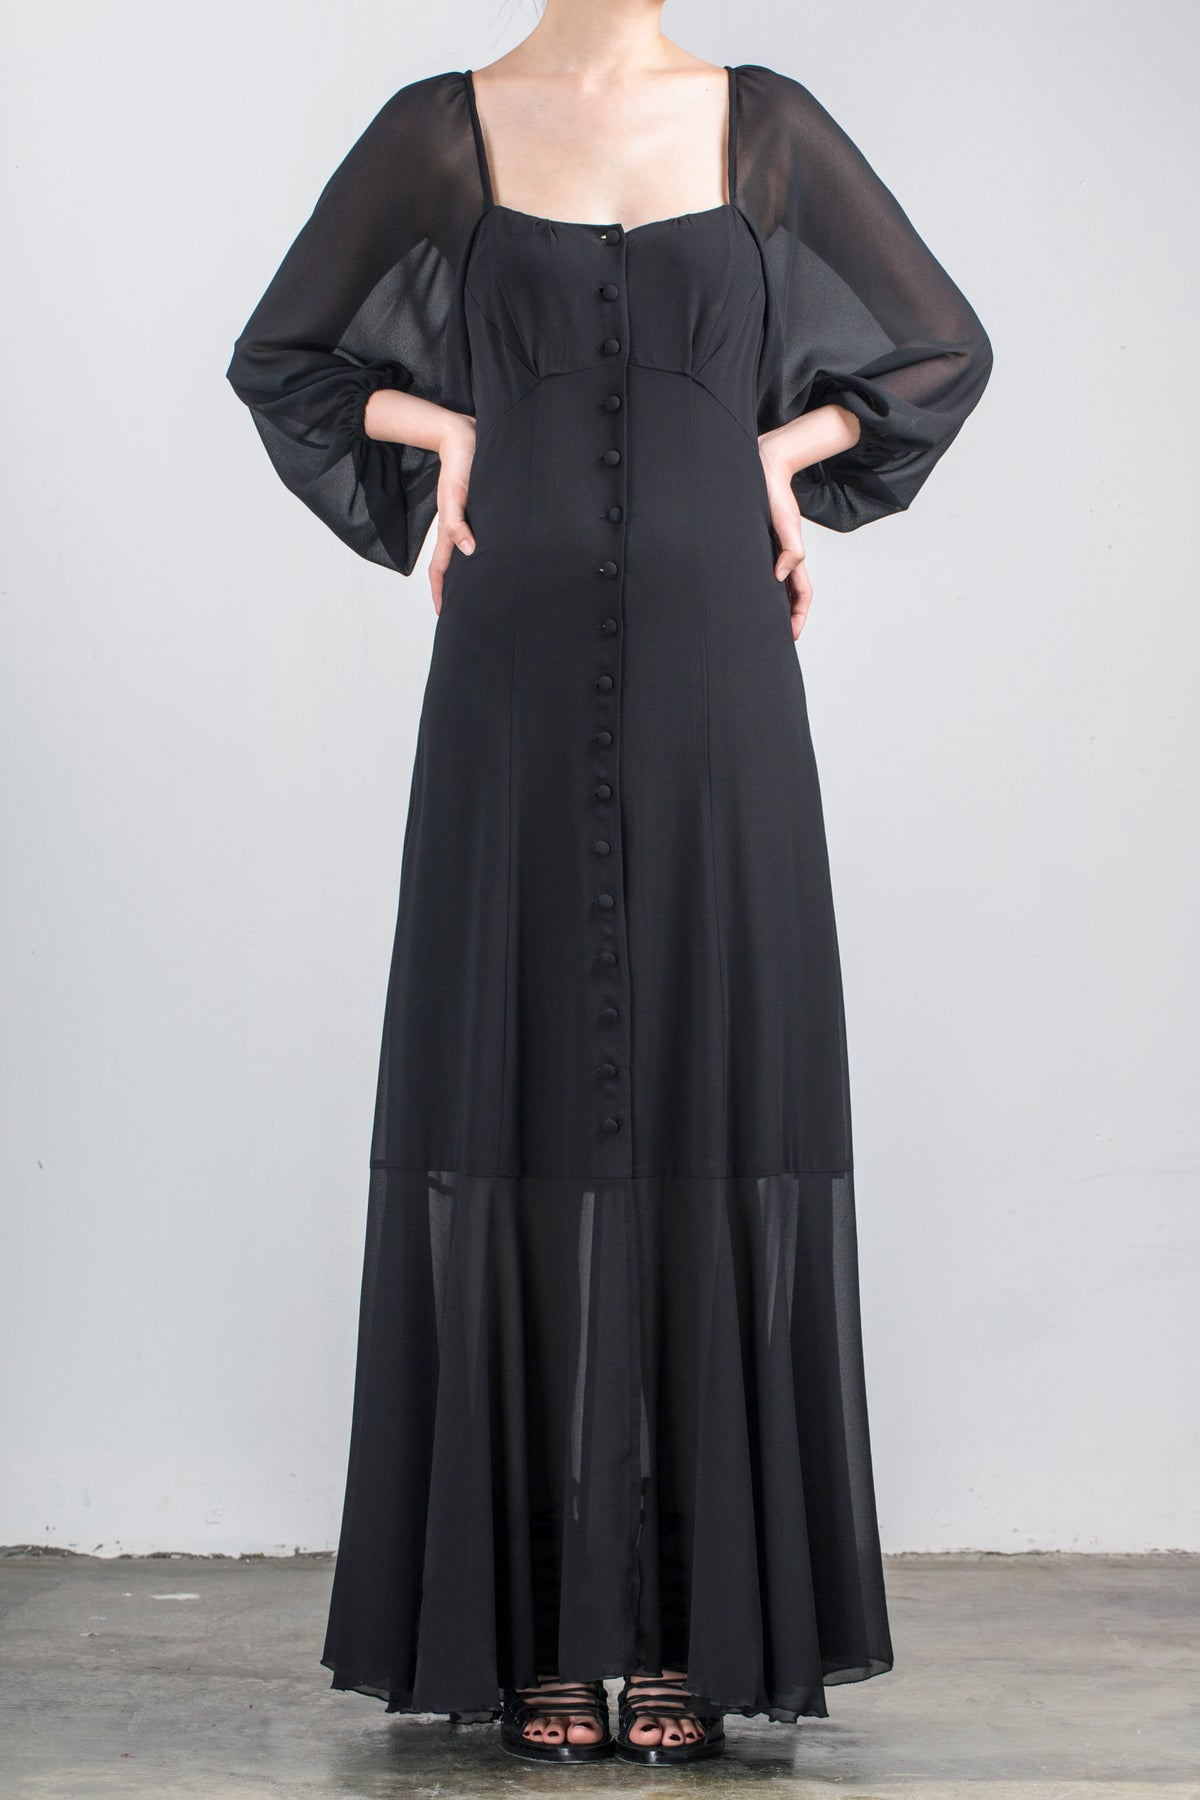 Image of SS1809 - Cinzia Long Dress - Black